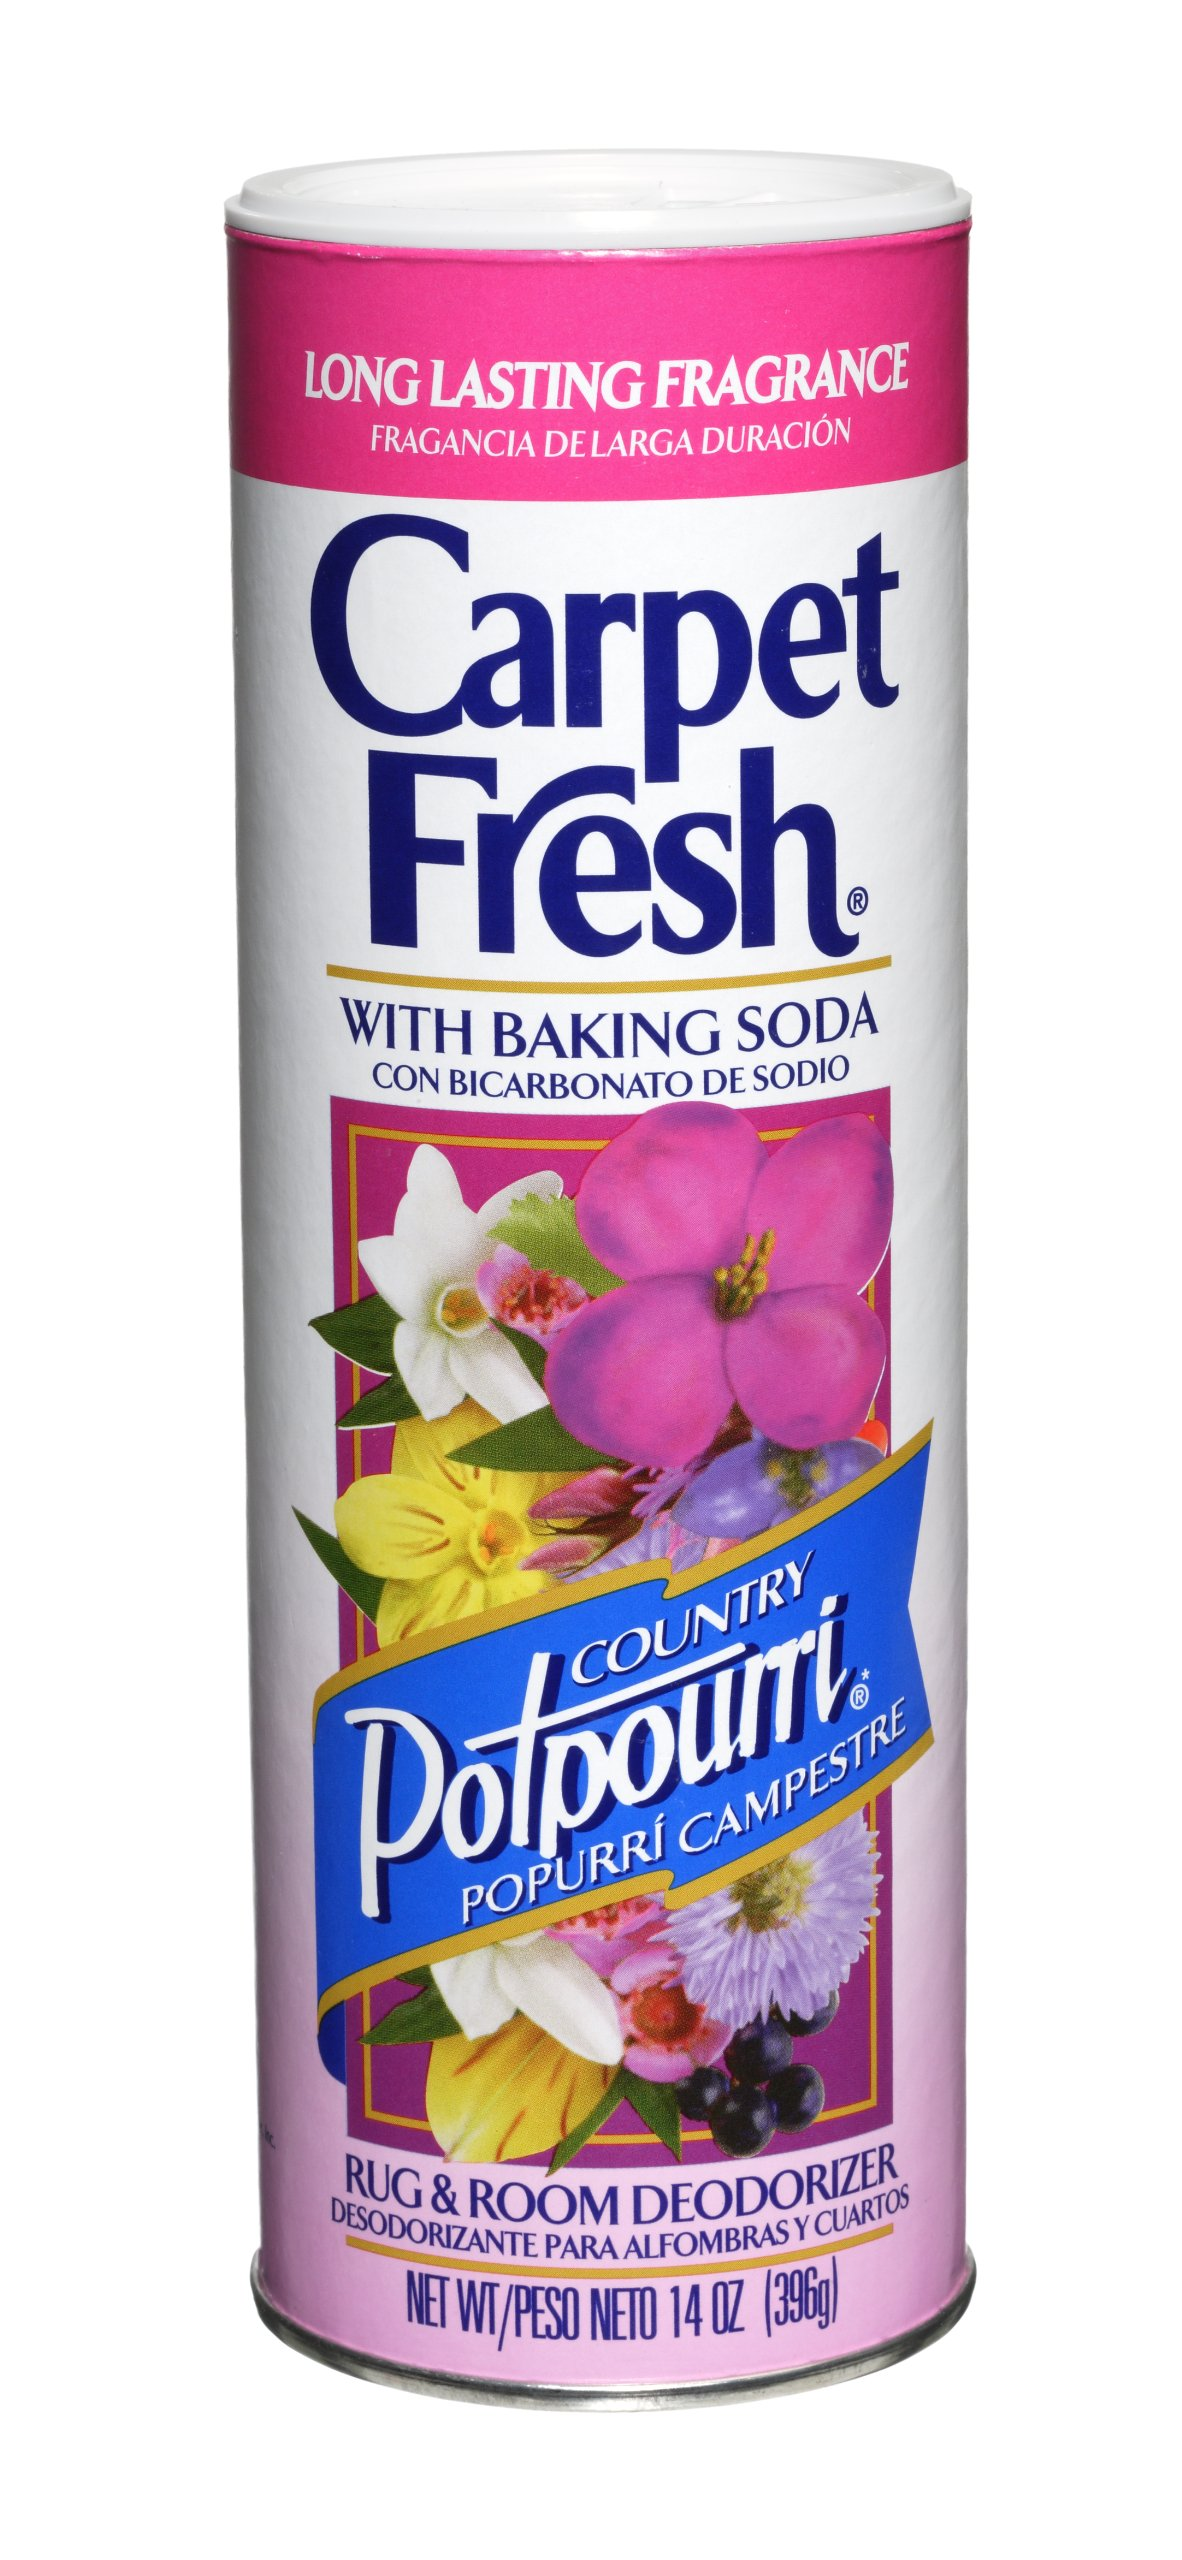 Carpet Fresh Rug and Room Deodorizer with Baking Soda, Country Potpourri Fragrance, 14 OZ [12-Pack]